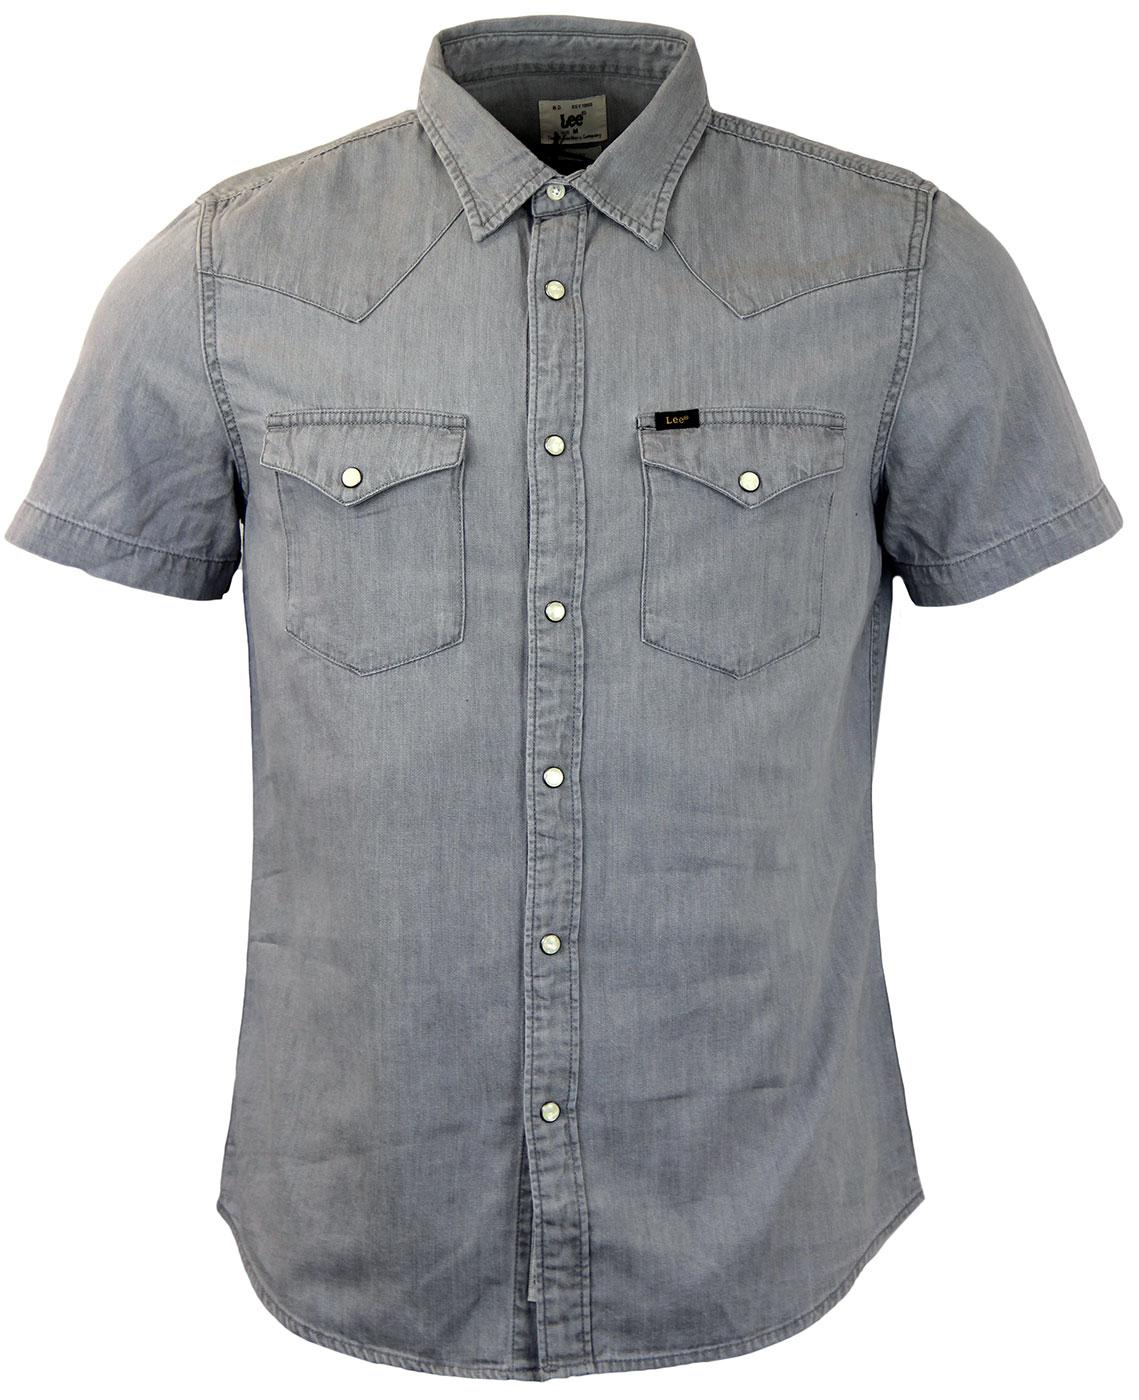 ec8a918997 LEE JEANS Retro 70s Indie Denim SS Western Shirt in Frost Grey